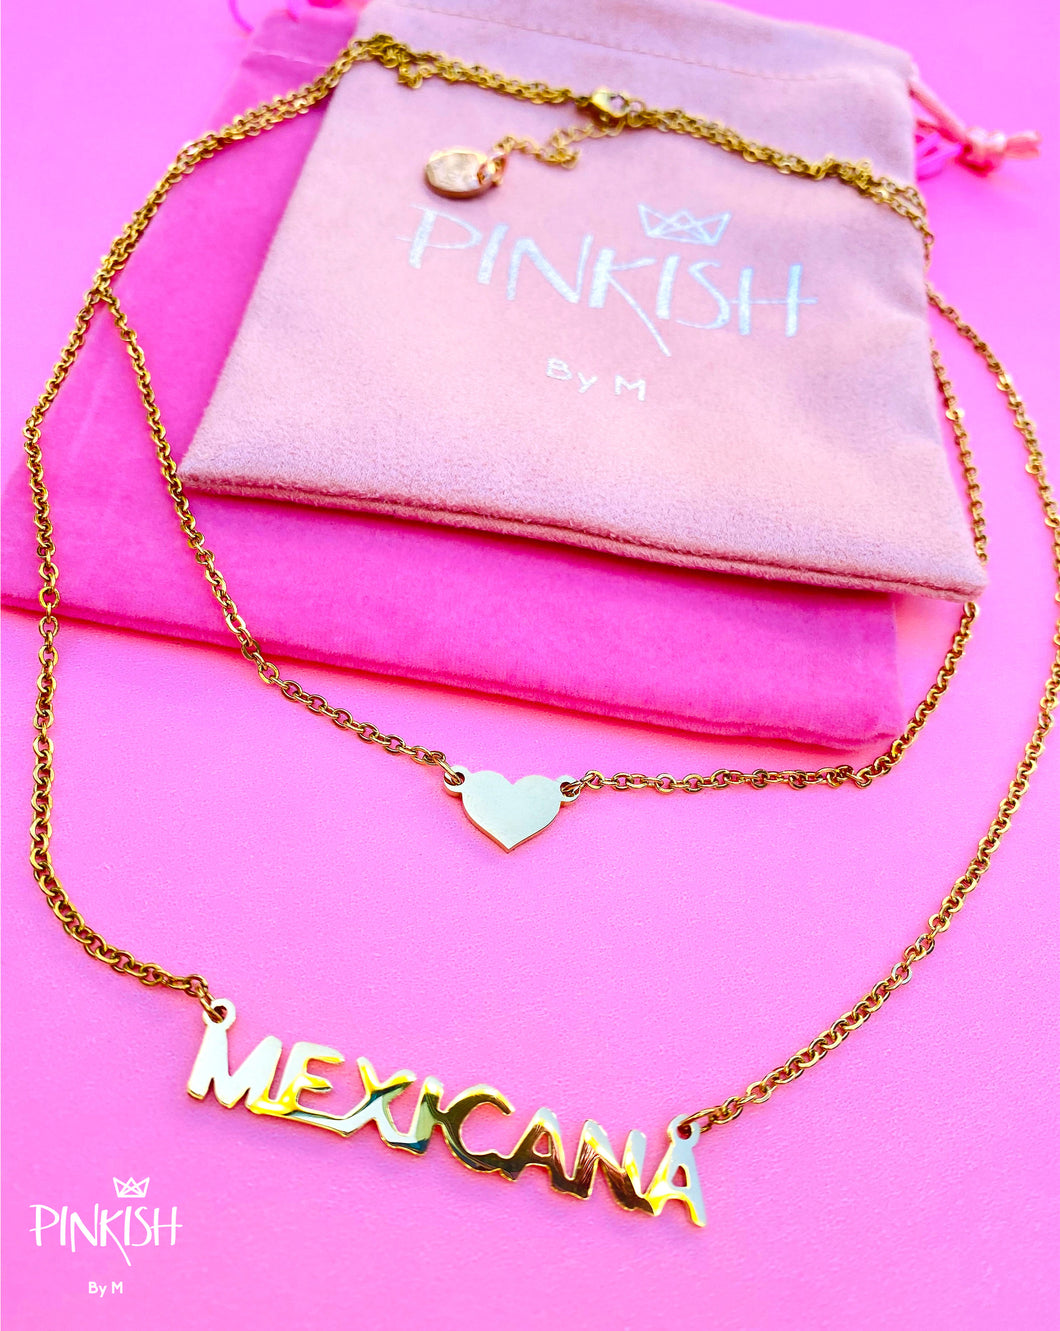 Heart Mexicana Double Layer Necklace Jewelry Cute Gold Stainless Steel